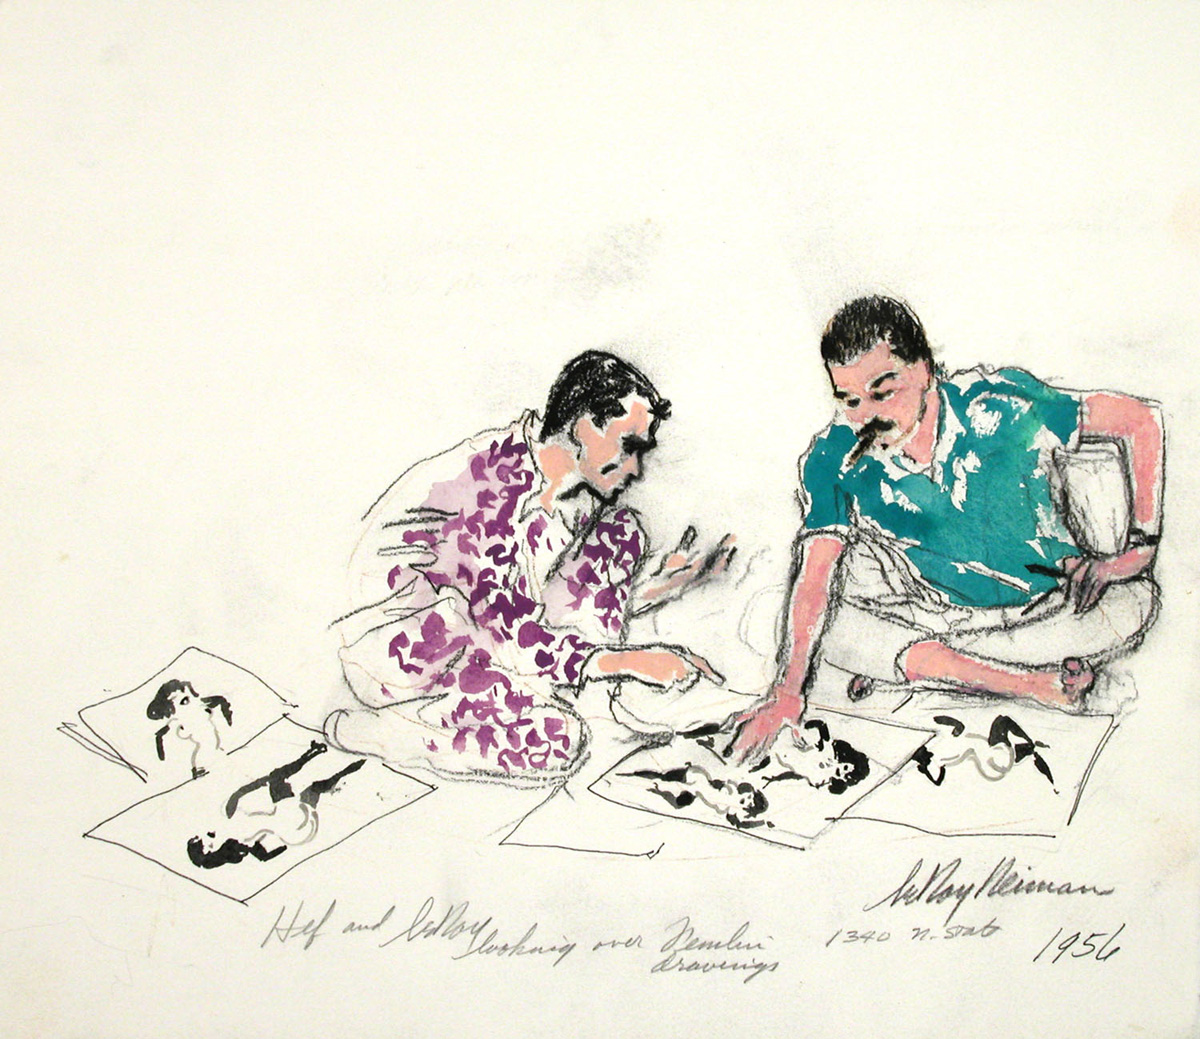 SOLD Hef and LeRoy looking at Femlin Drawings, mixed media on paper, 13 x 15 in., 1956